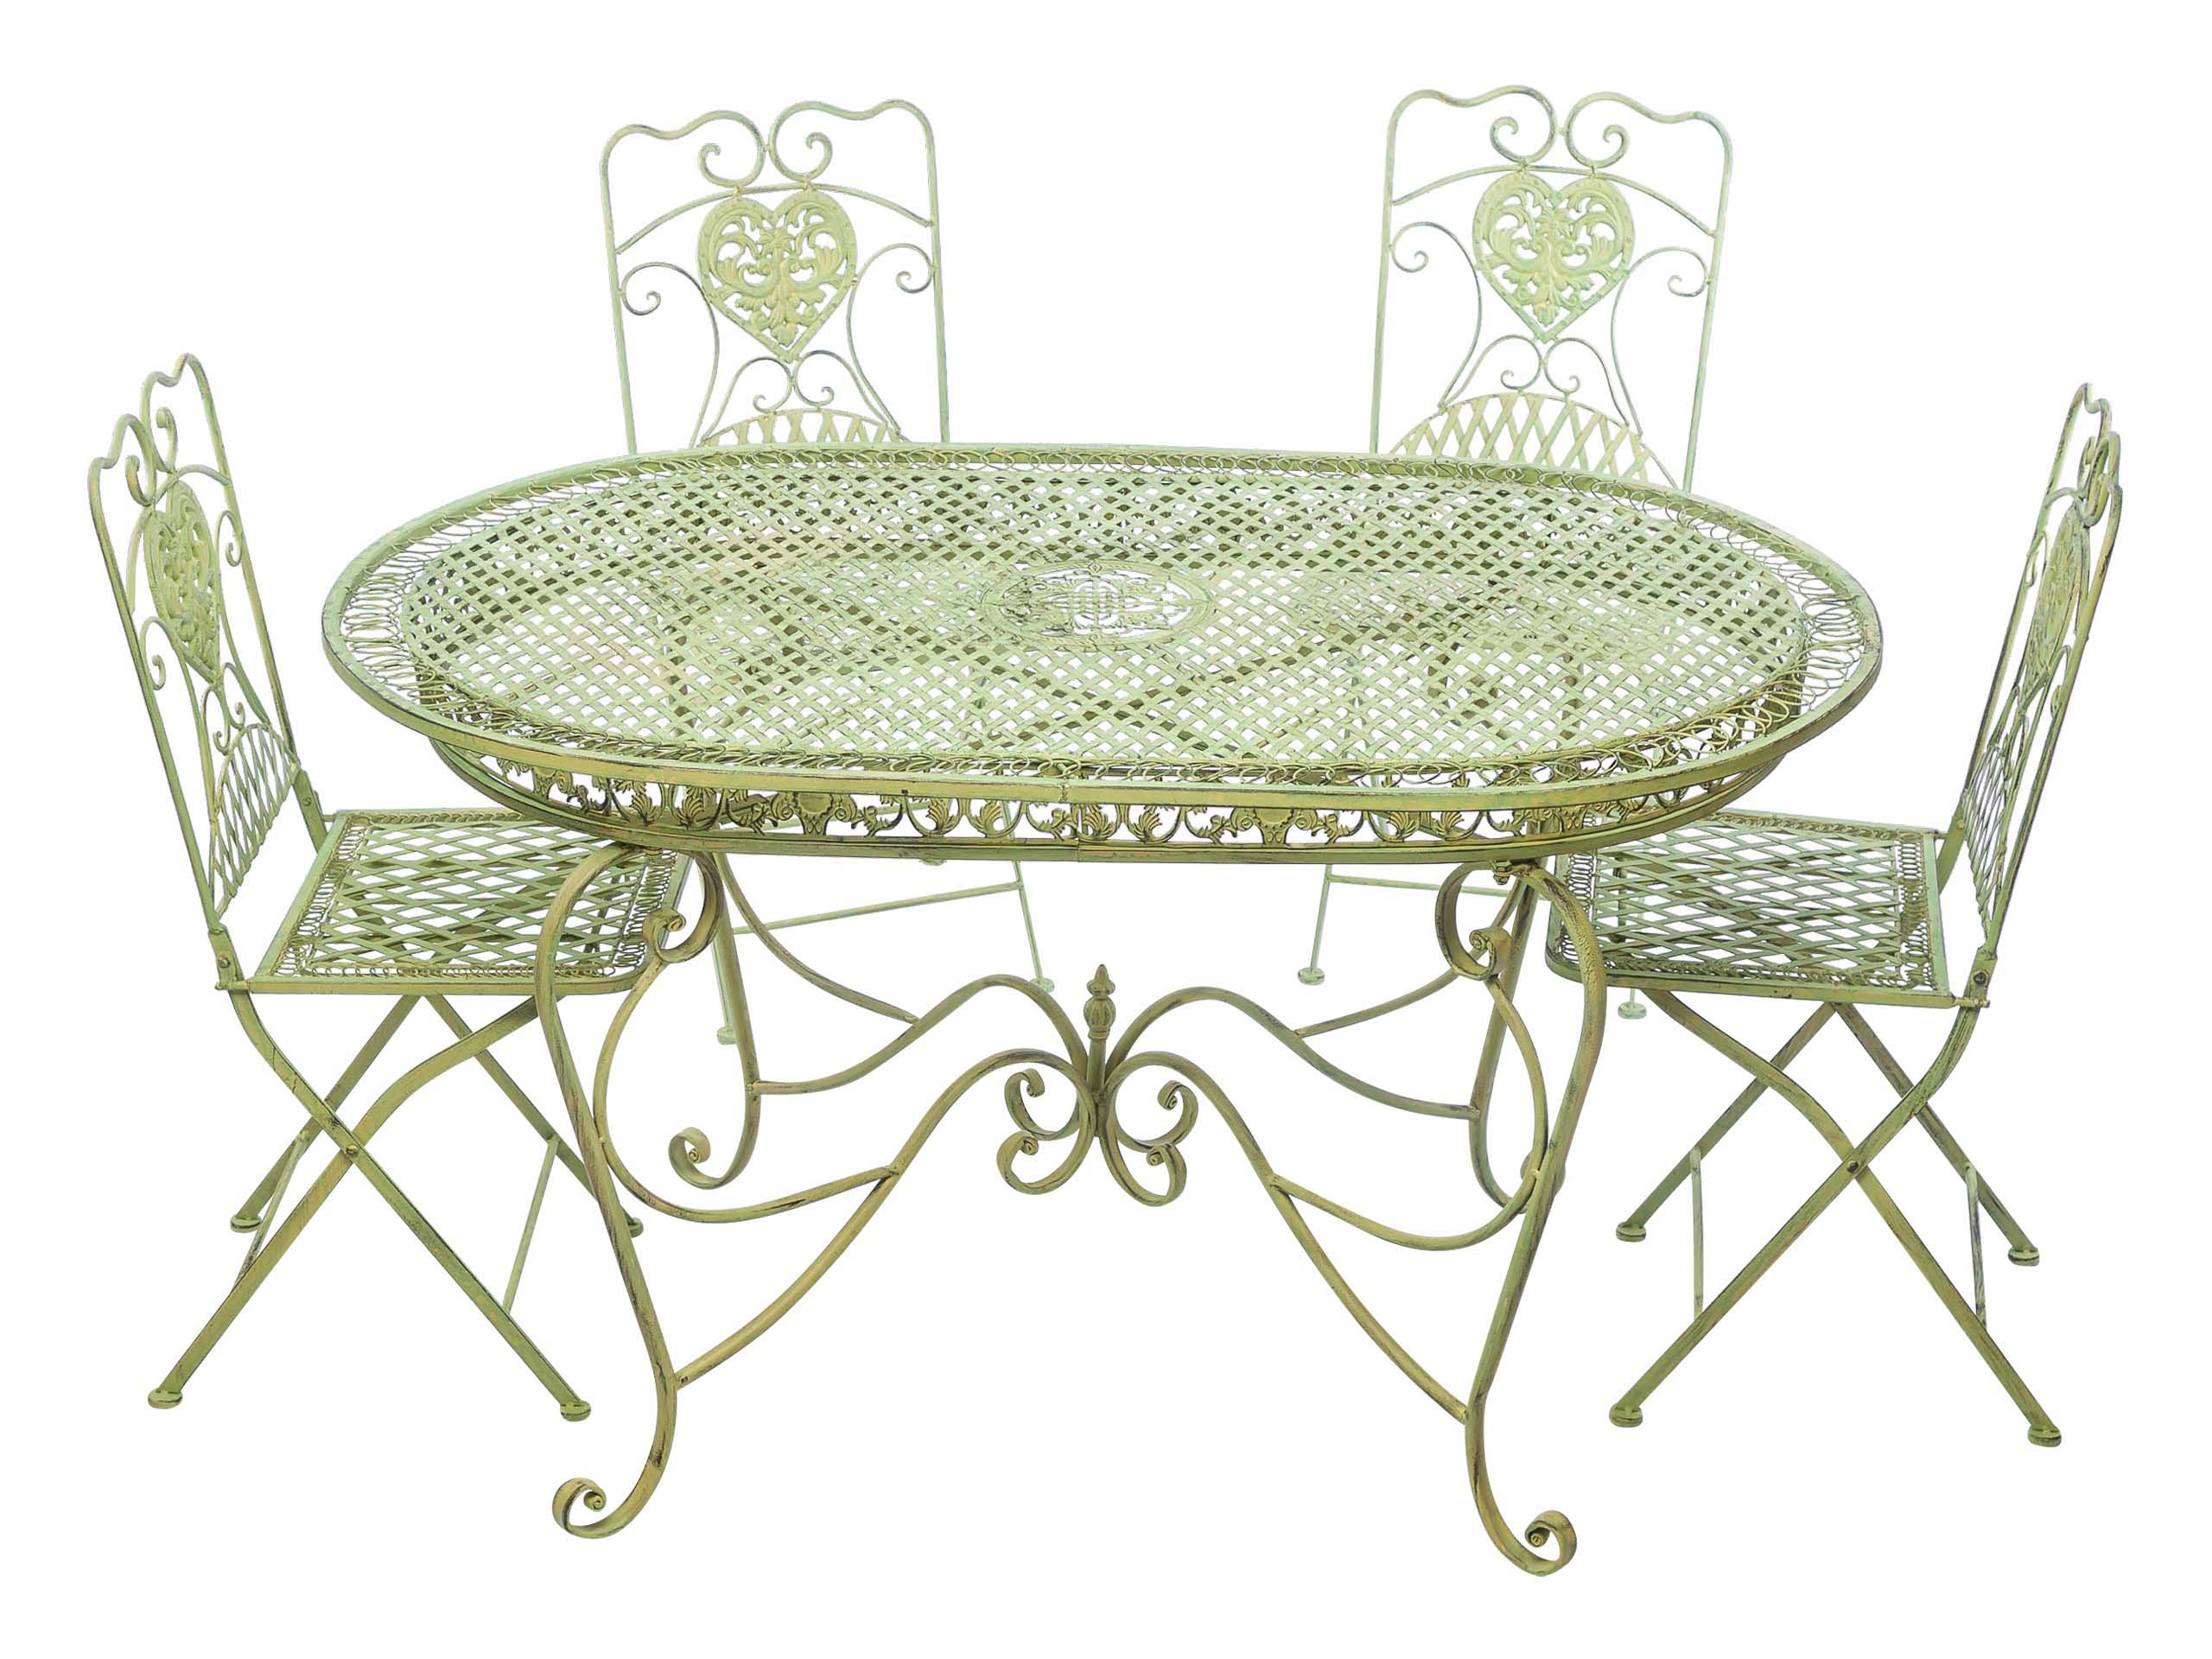 Grüne Küchenstühle Set Garden Table 4 Chairs Green Iron Garden Furniture Chair Antiquestyle